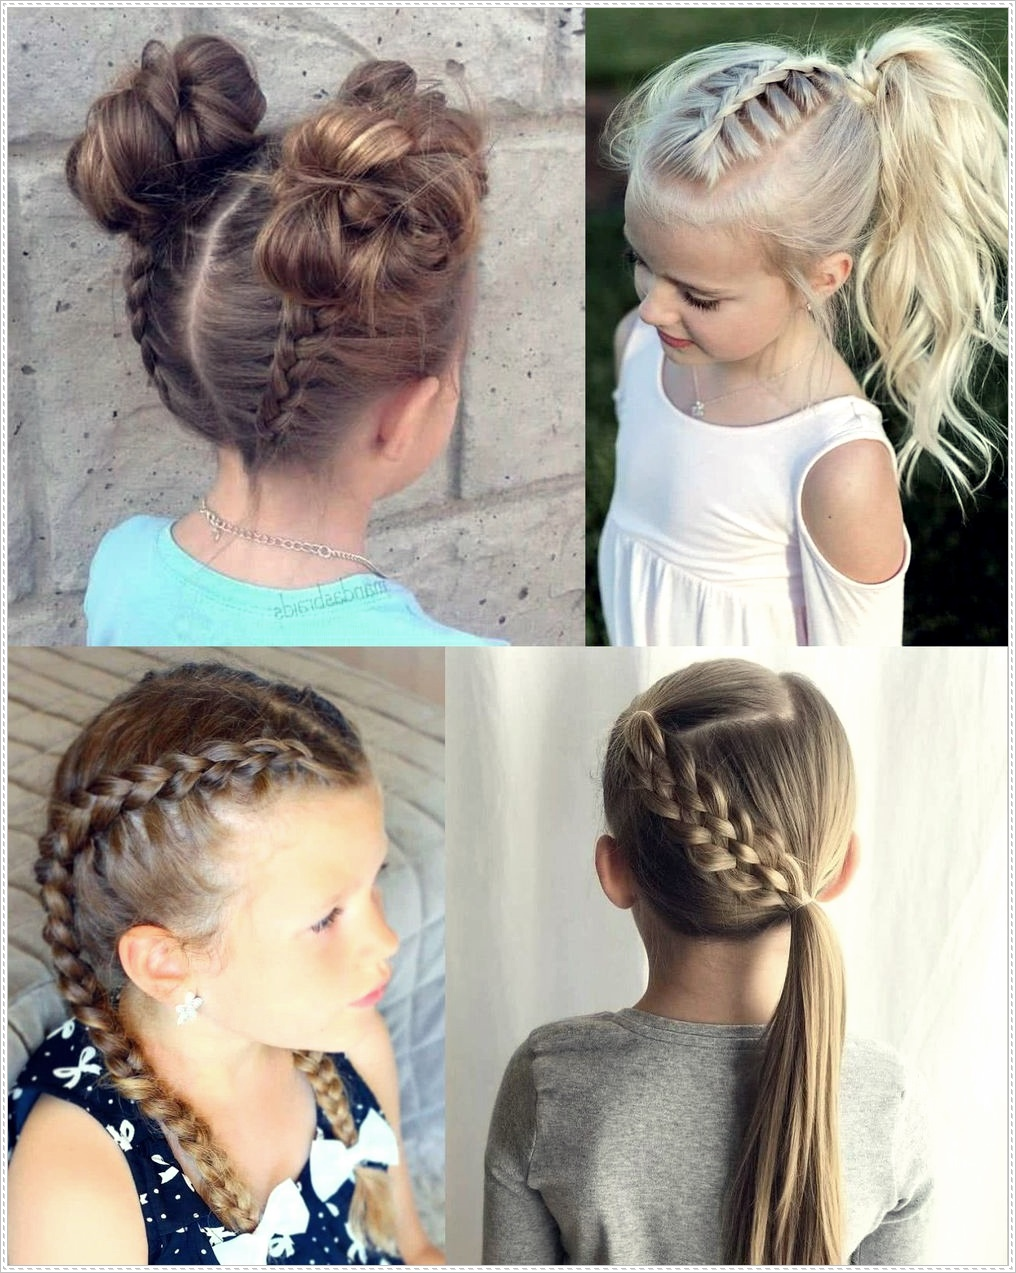 Hairstyles with braids for girls